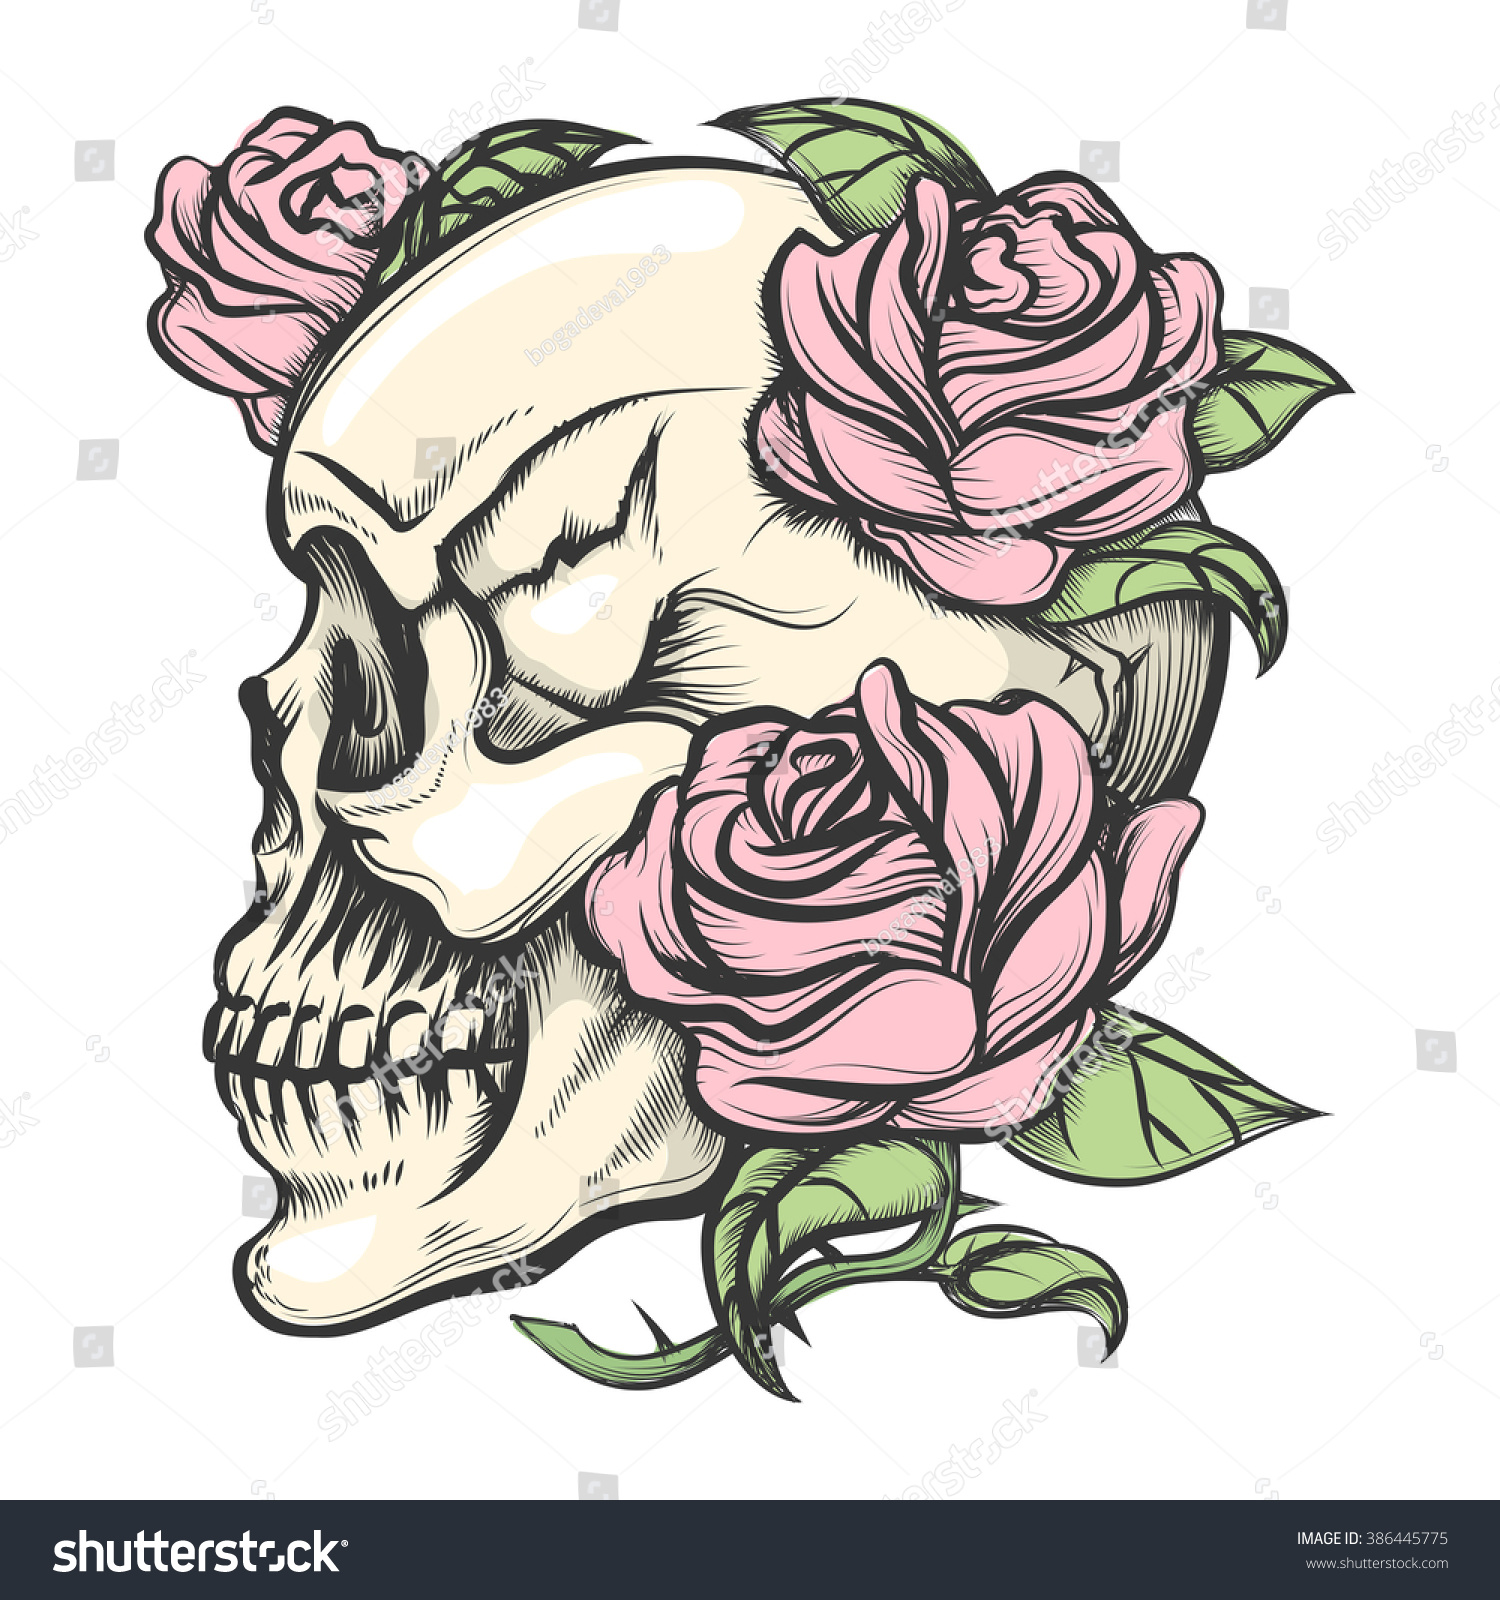 Human Skull Roses Drawn Tattoo Style Stock Vector Royalty Free Blank Body Diagram With In Isolated On White